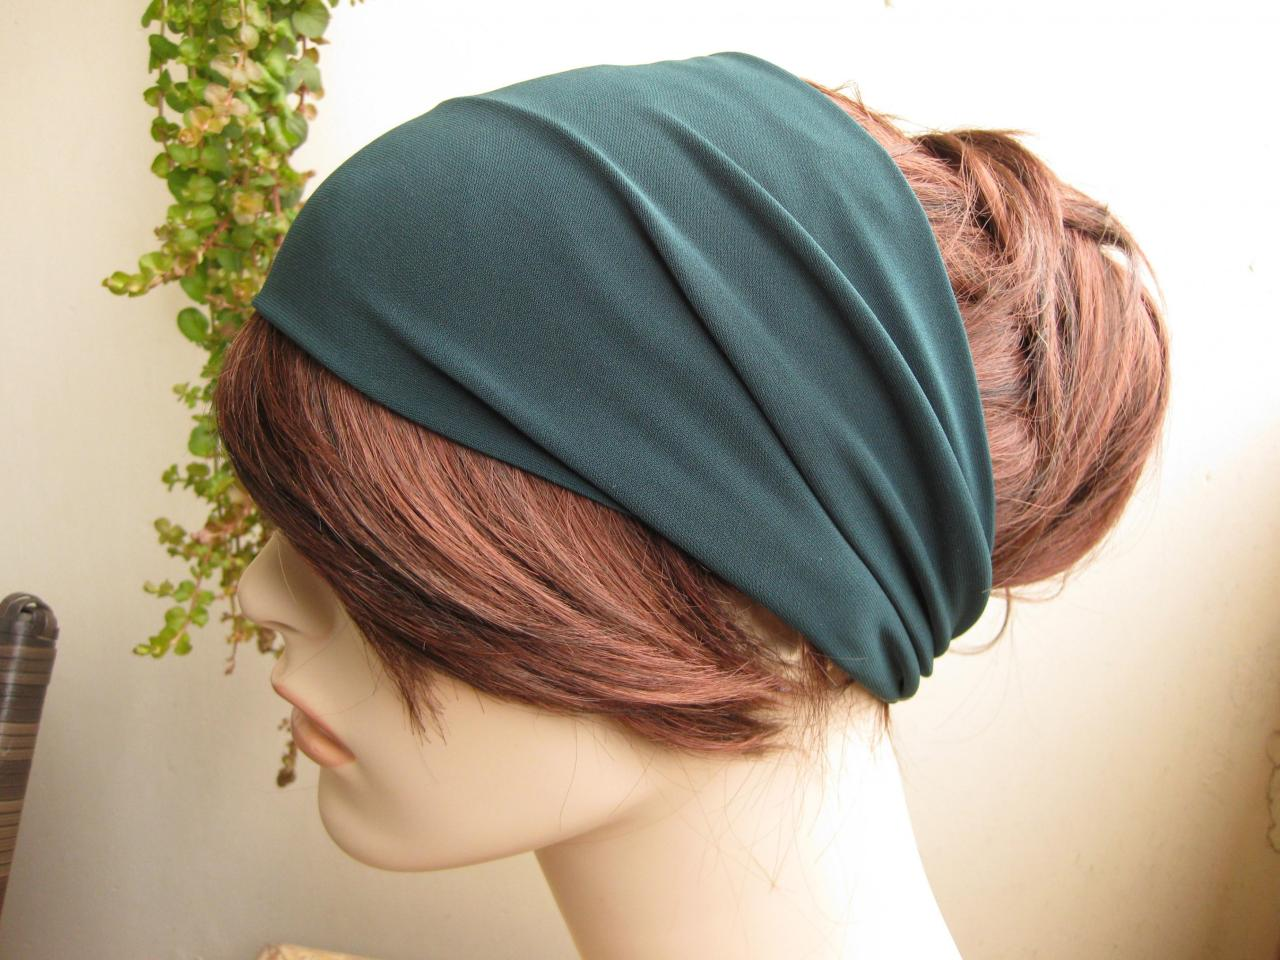 Turban Head Wrap, Wide Hair Band, Women's Yoga Wrap, Wide Headband, Yoga Headband